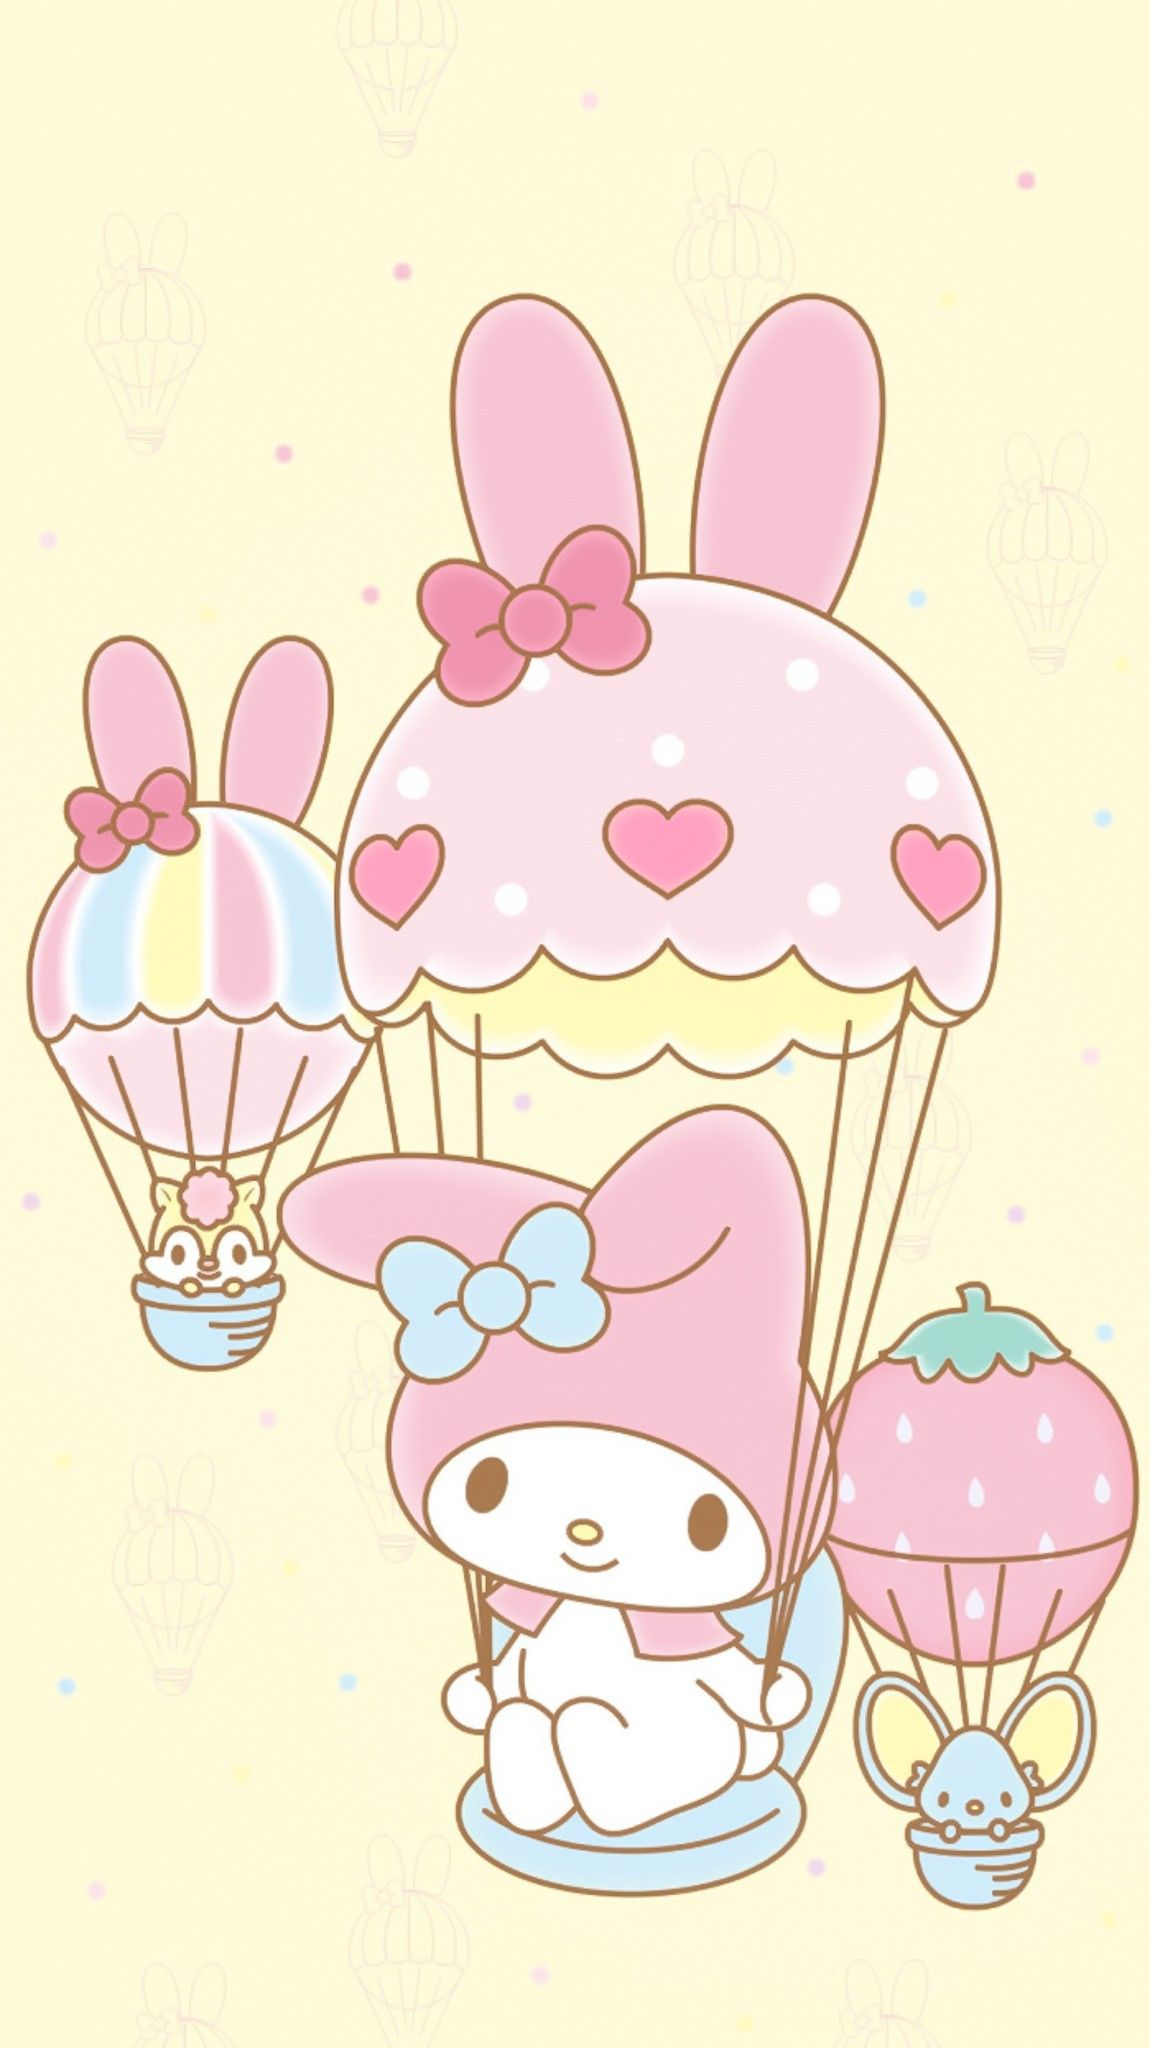 Pin by Que Que L on My Melody ☆ BG in 2020 | Melody hello ...